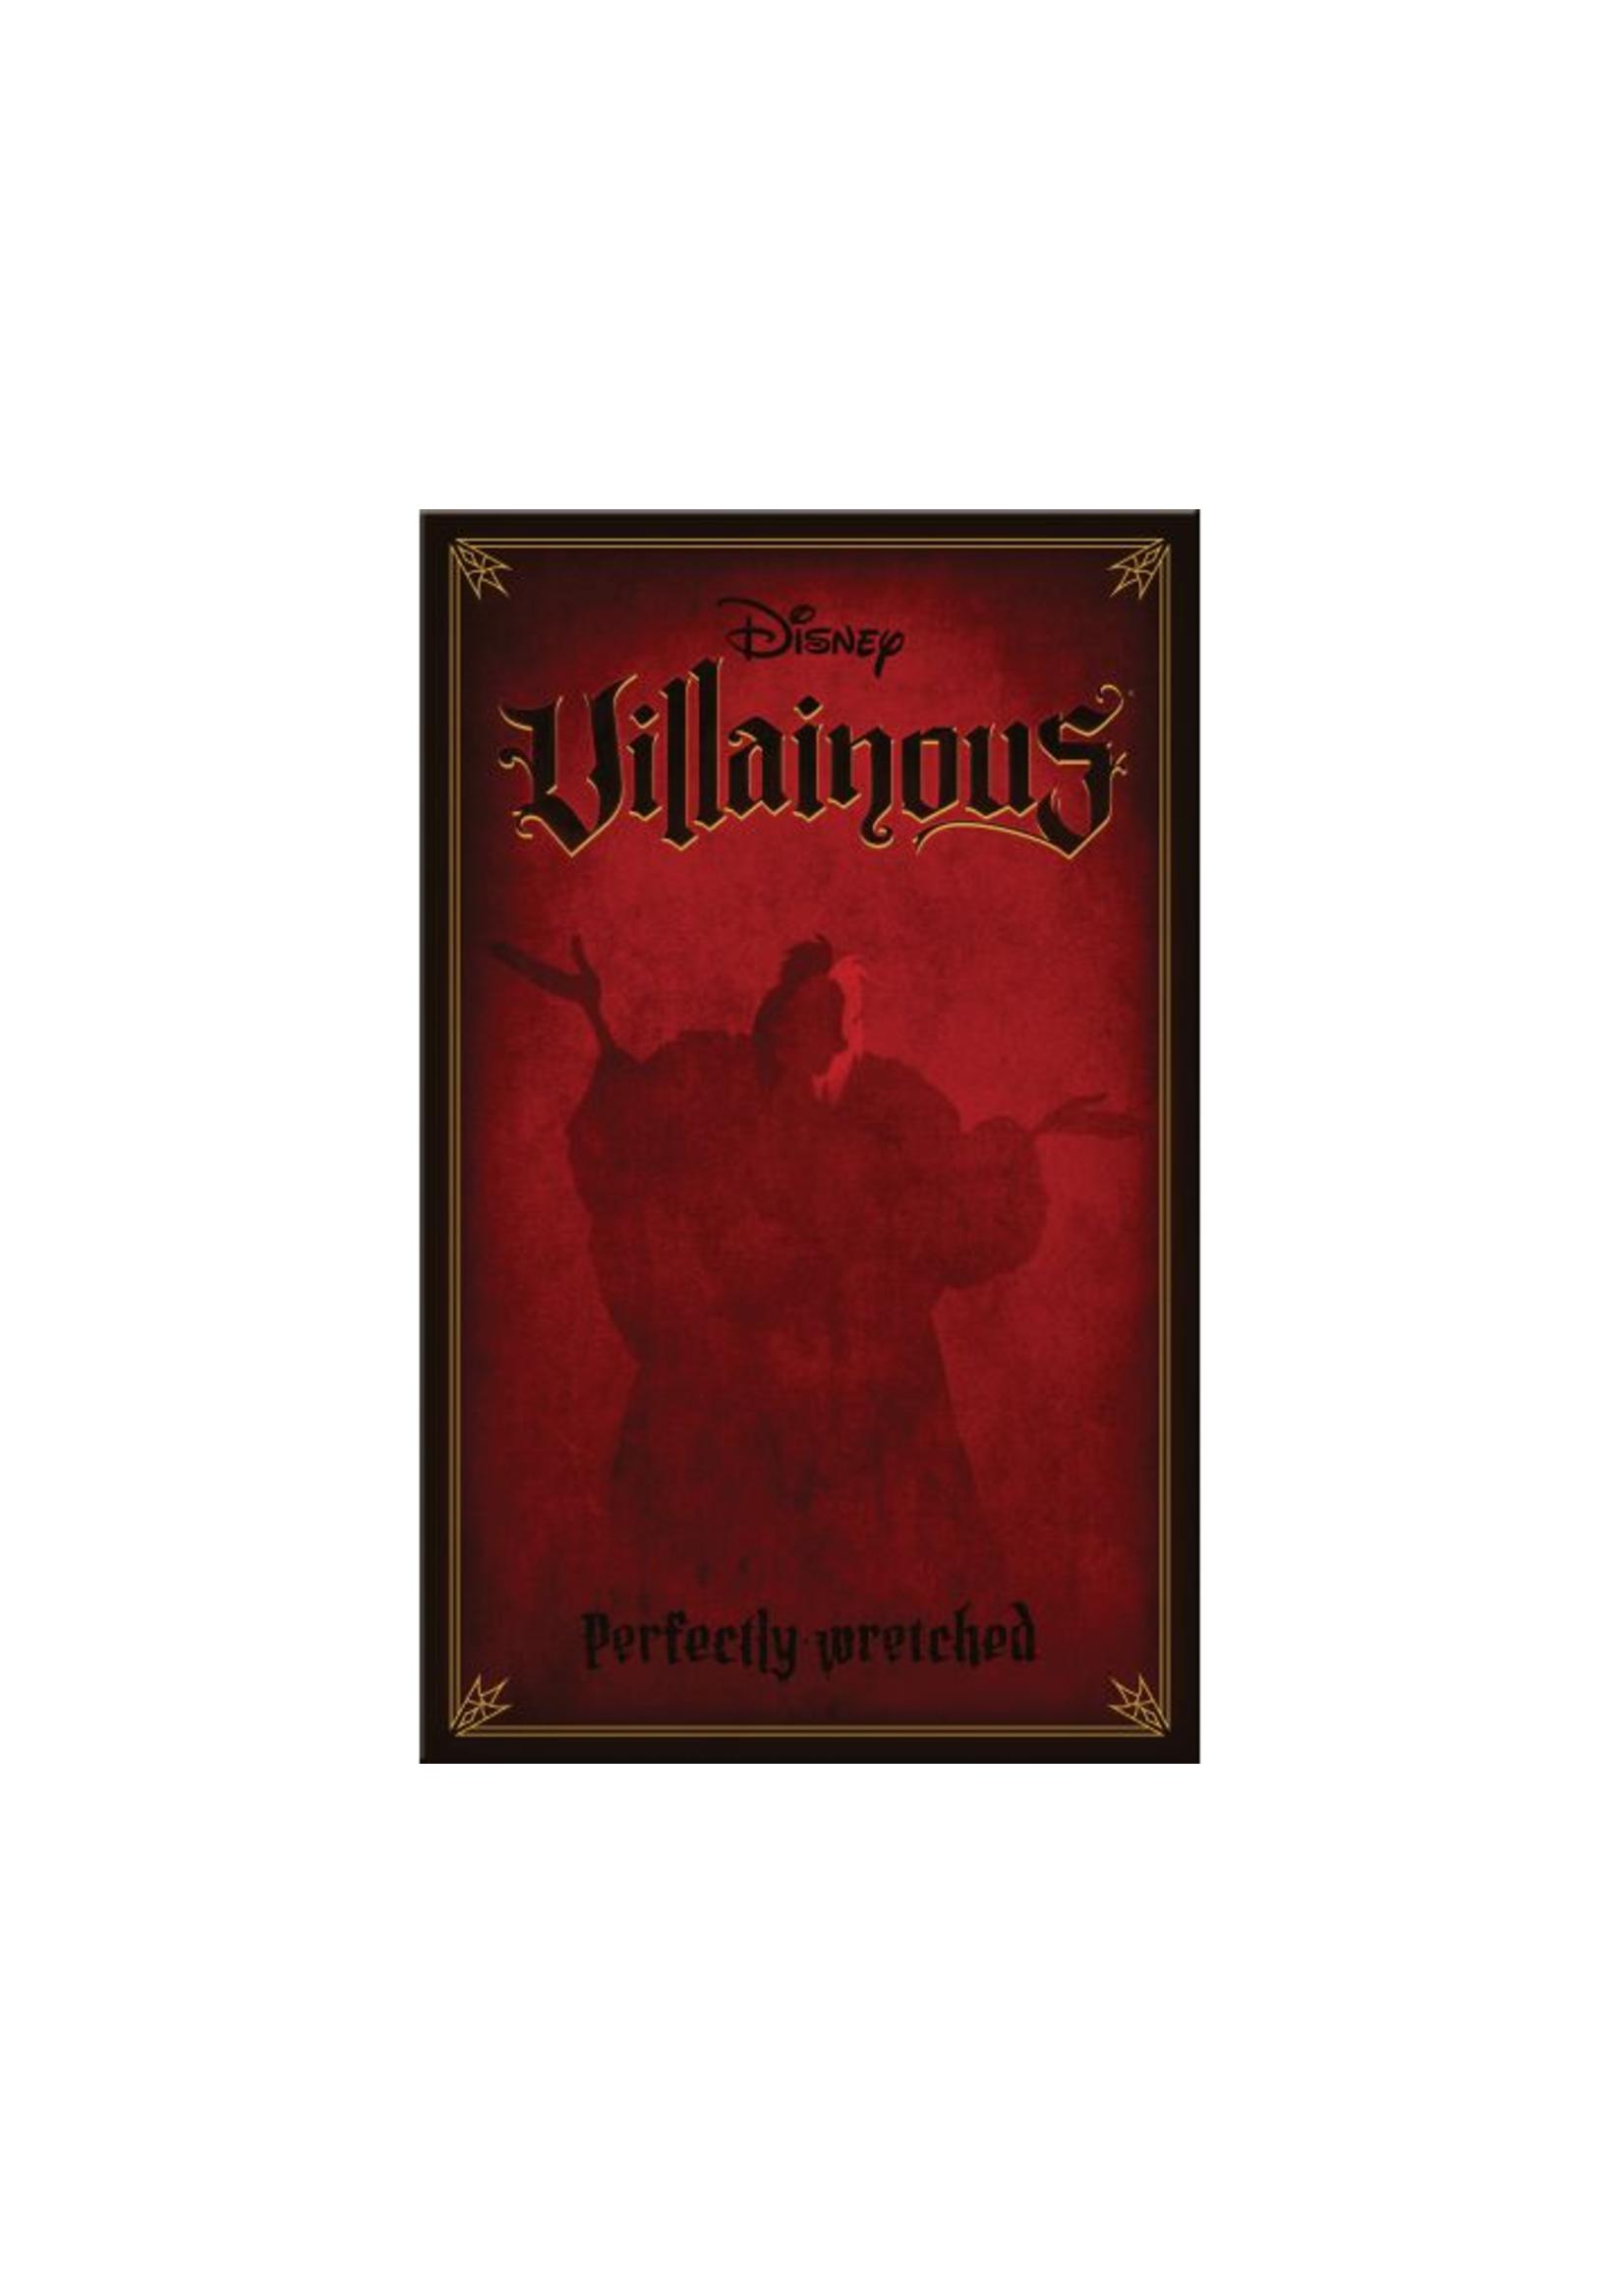 Disney Villainous - Perfectly Wretched (Red Box)